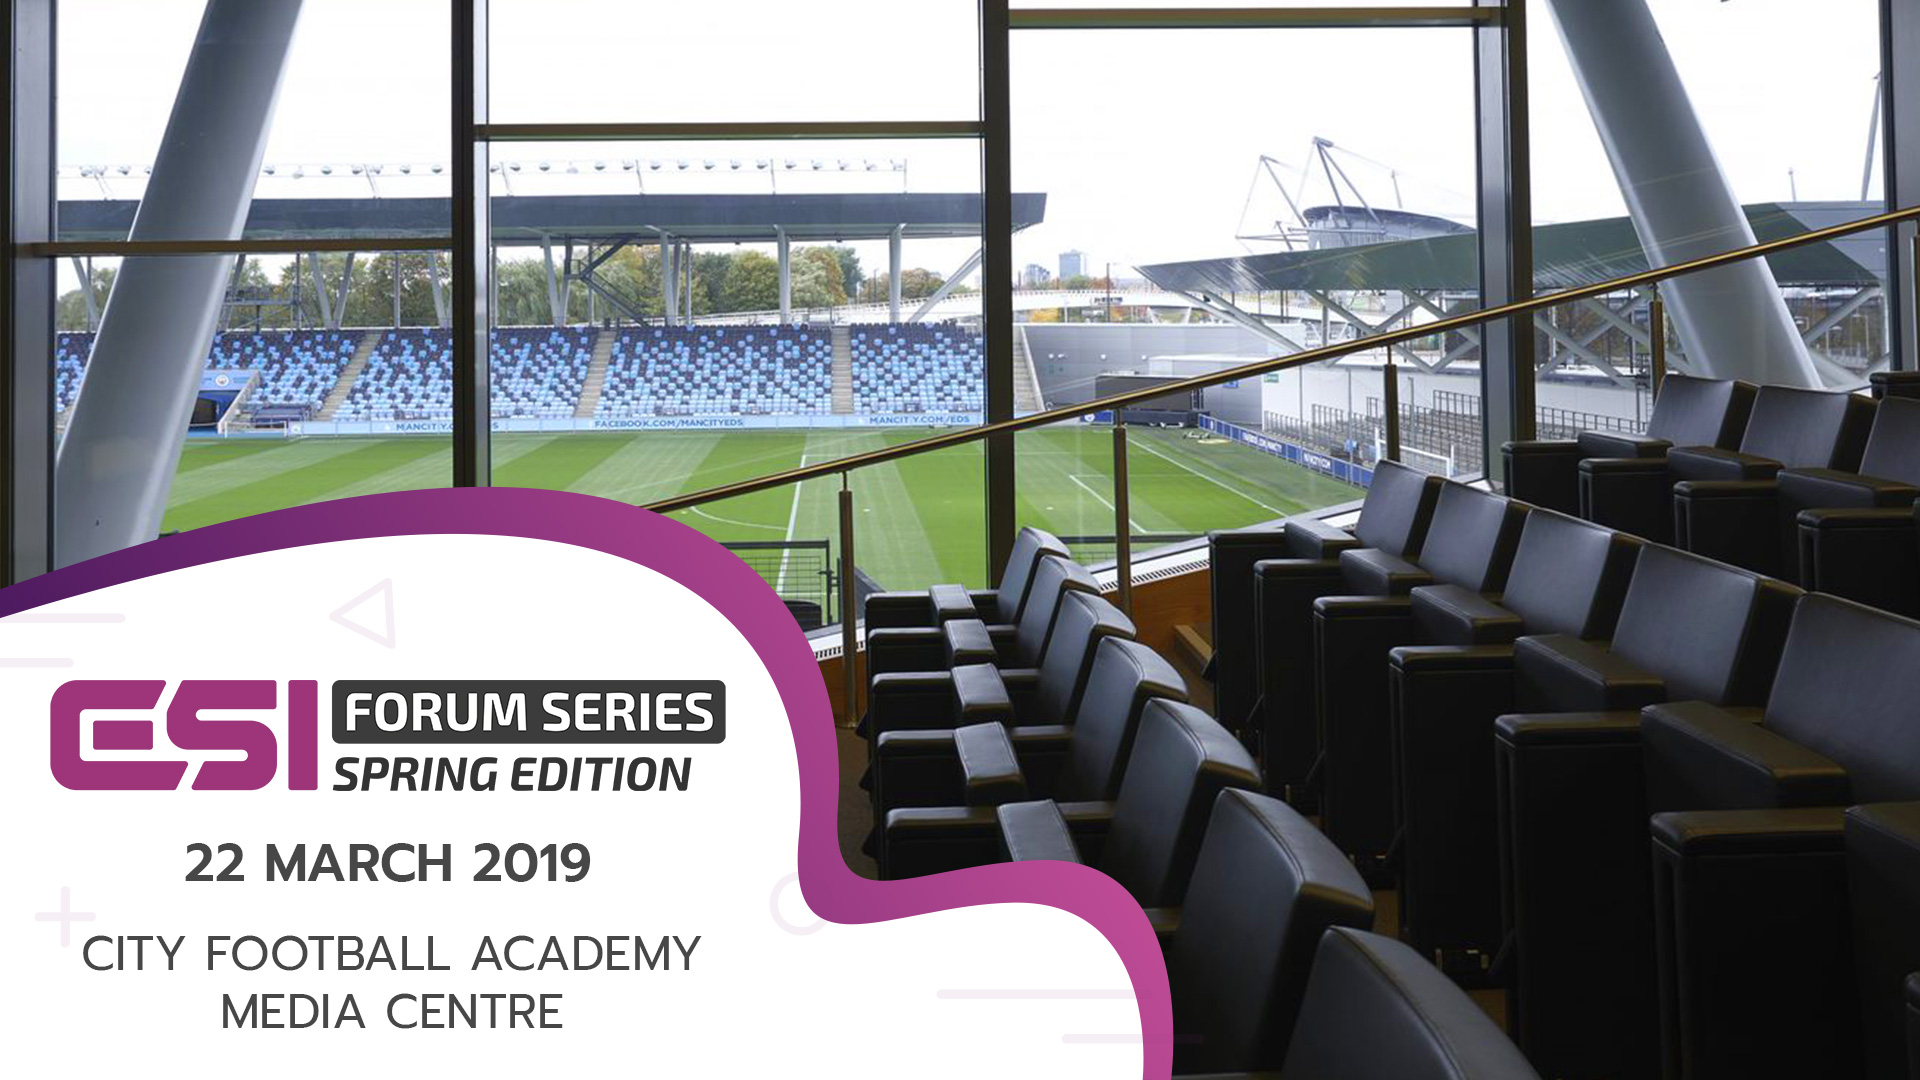 ESI Forum Spring Promo Image2 - Manchester is the venue for ESI Spring as Weavr added to Winter Forum lineup